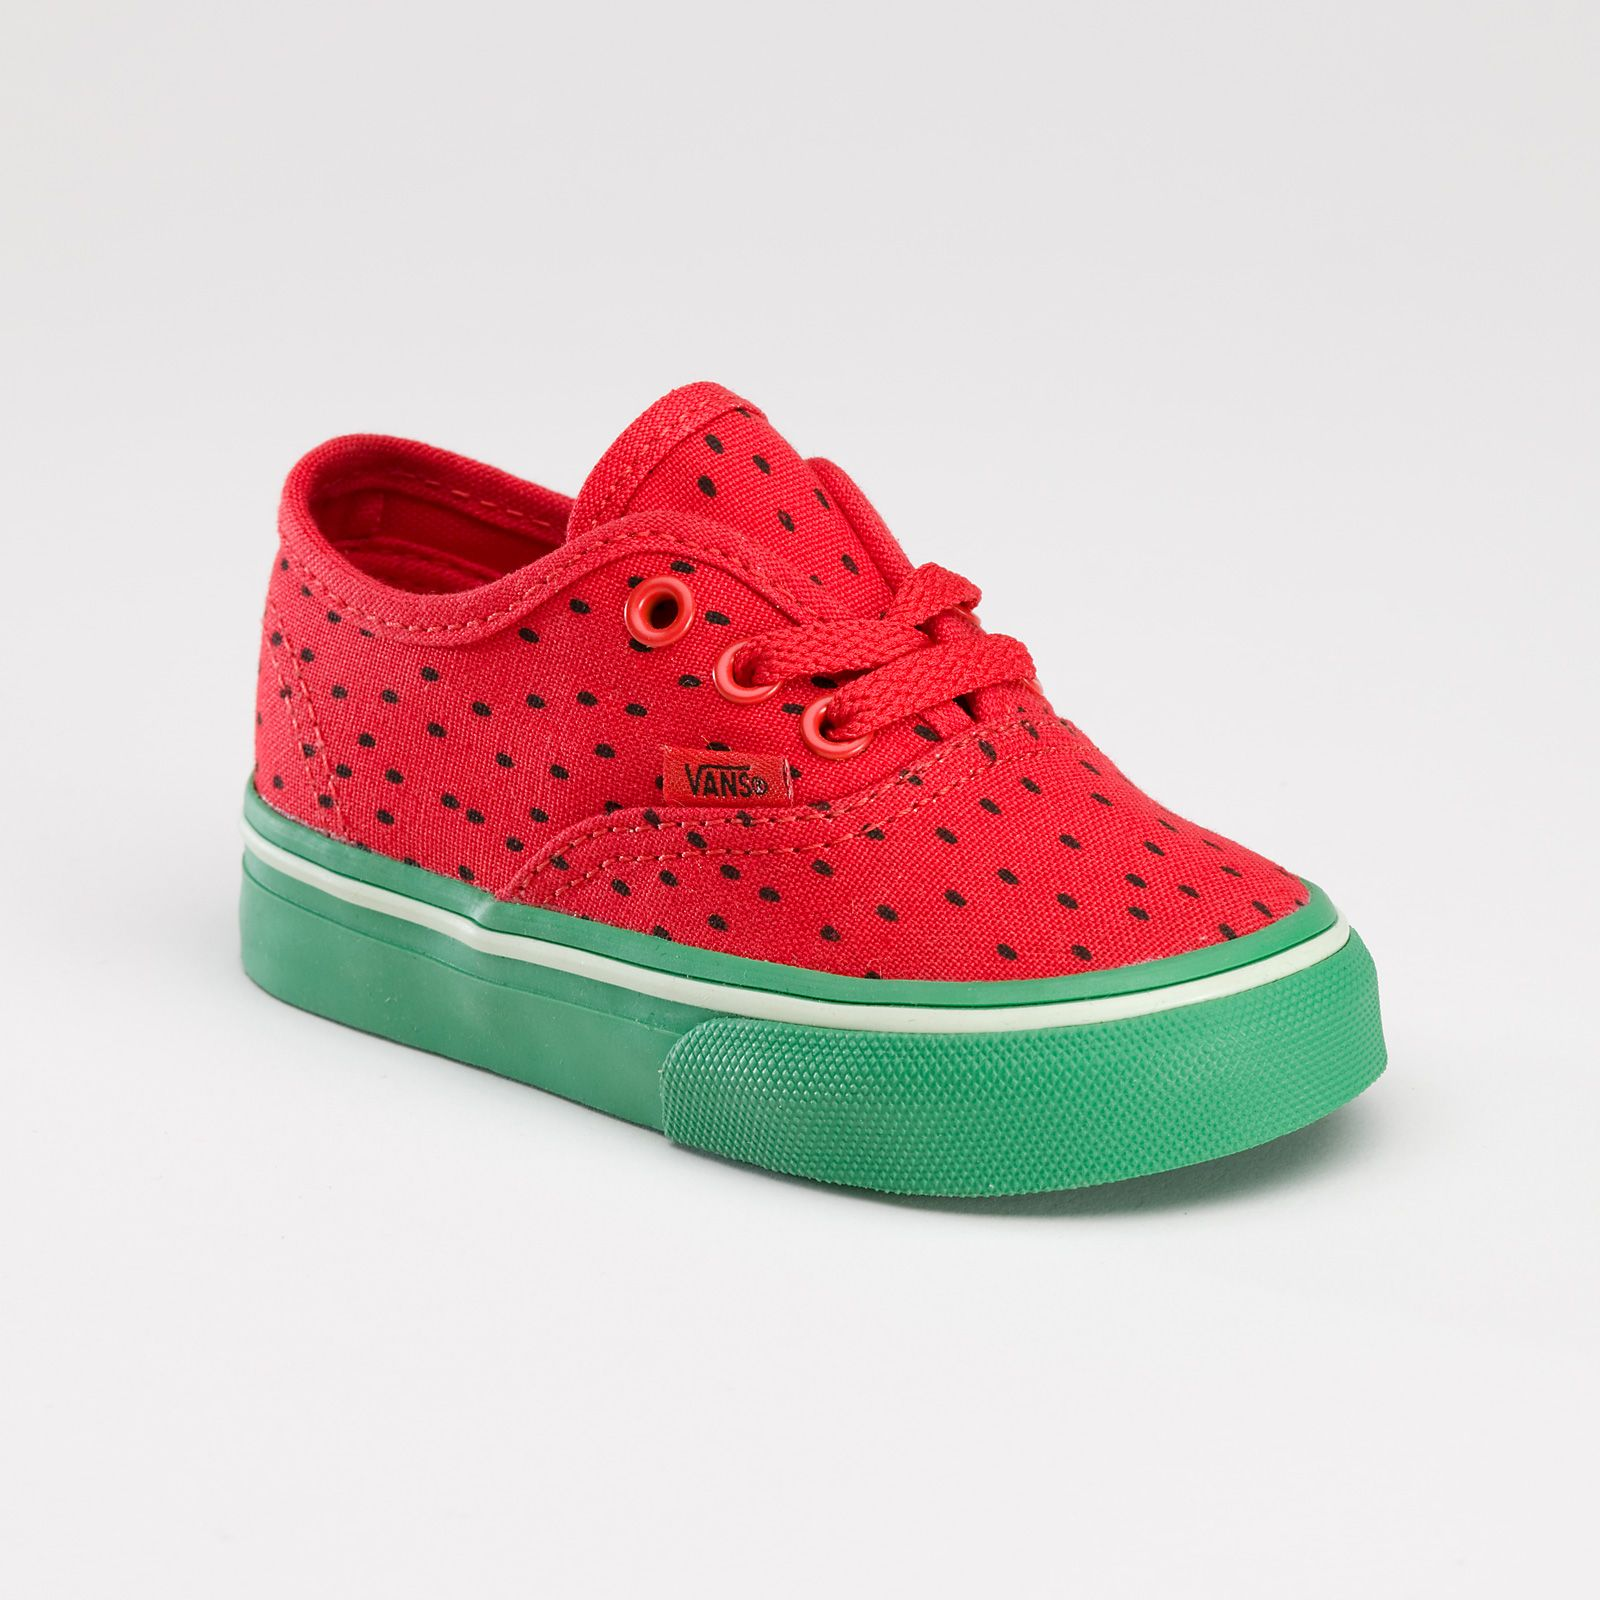 Newborn Shoes Vans Watermelon Vans For Poppy Children Baby Vans Baby